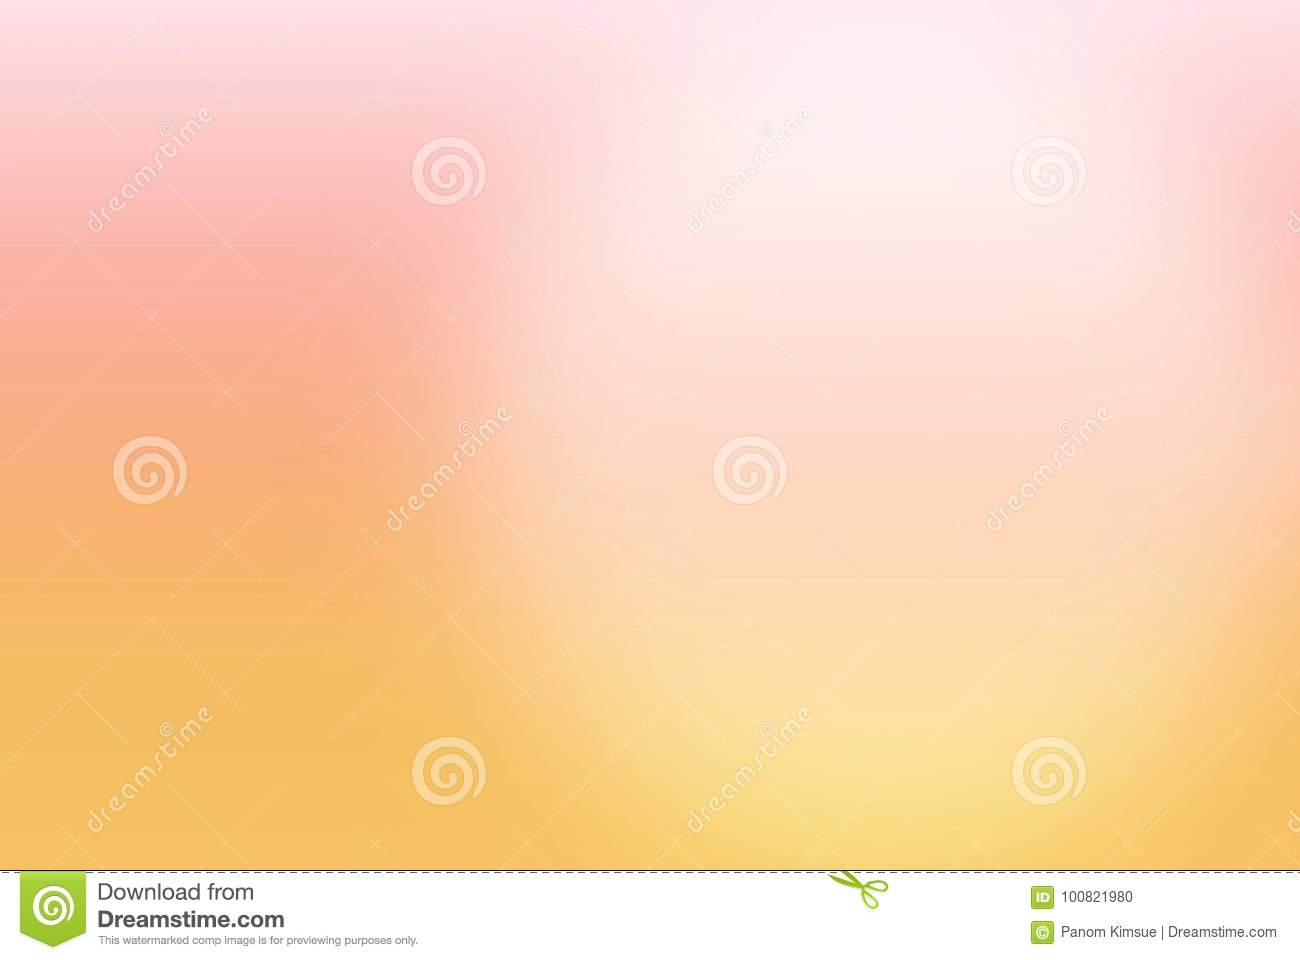 Abstract Blurred Pink Orange And Yellow Color Background With A